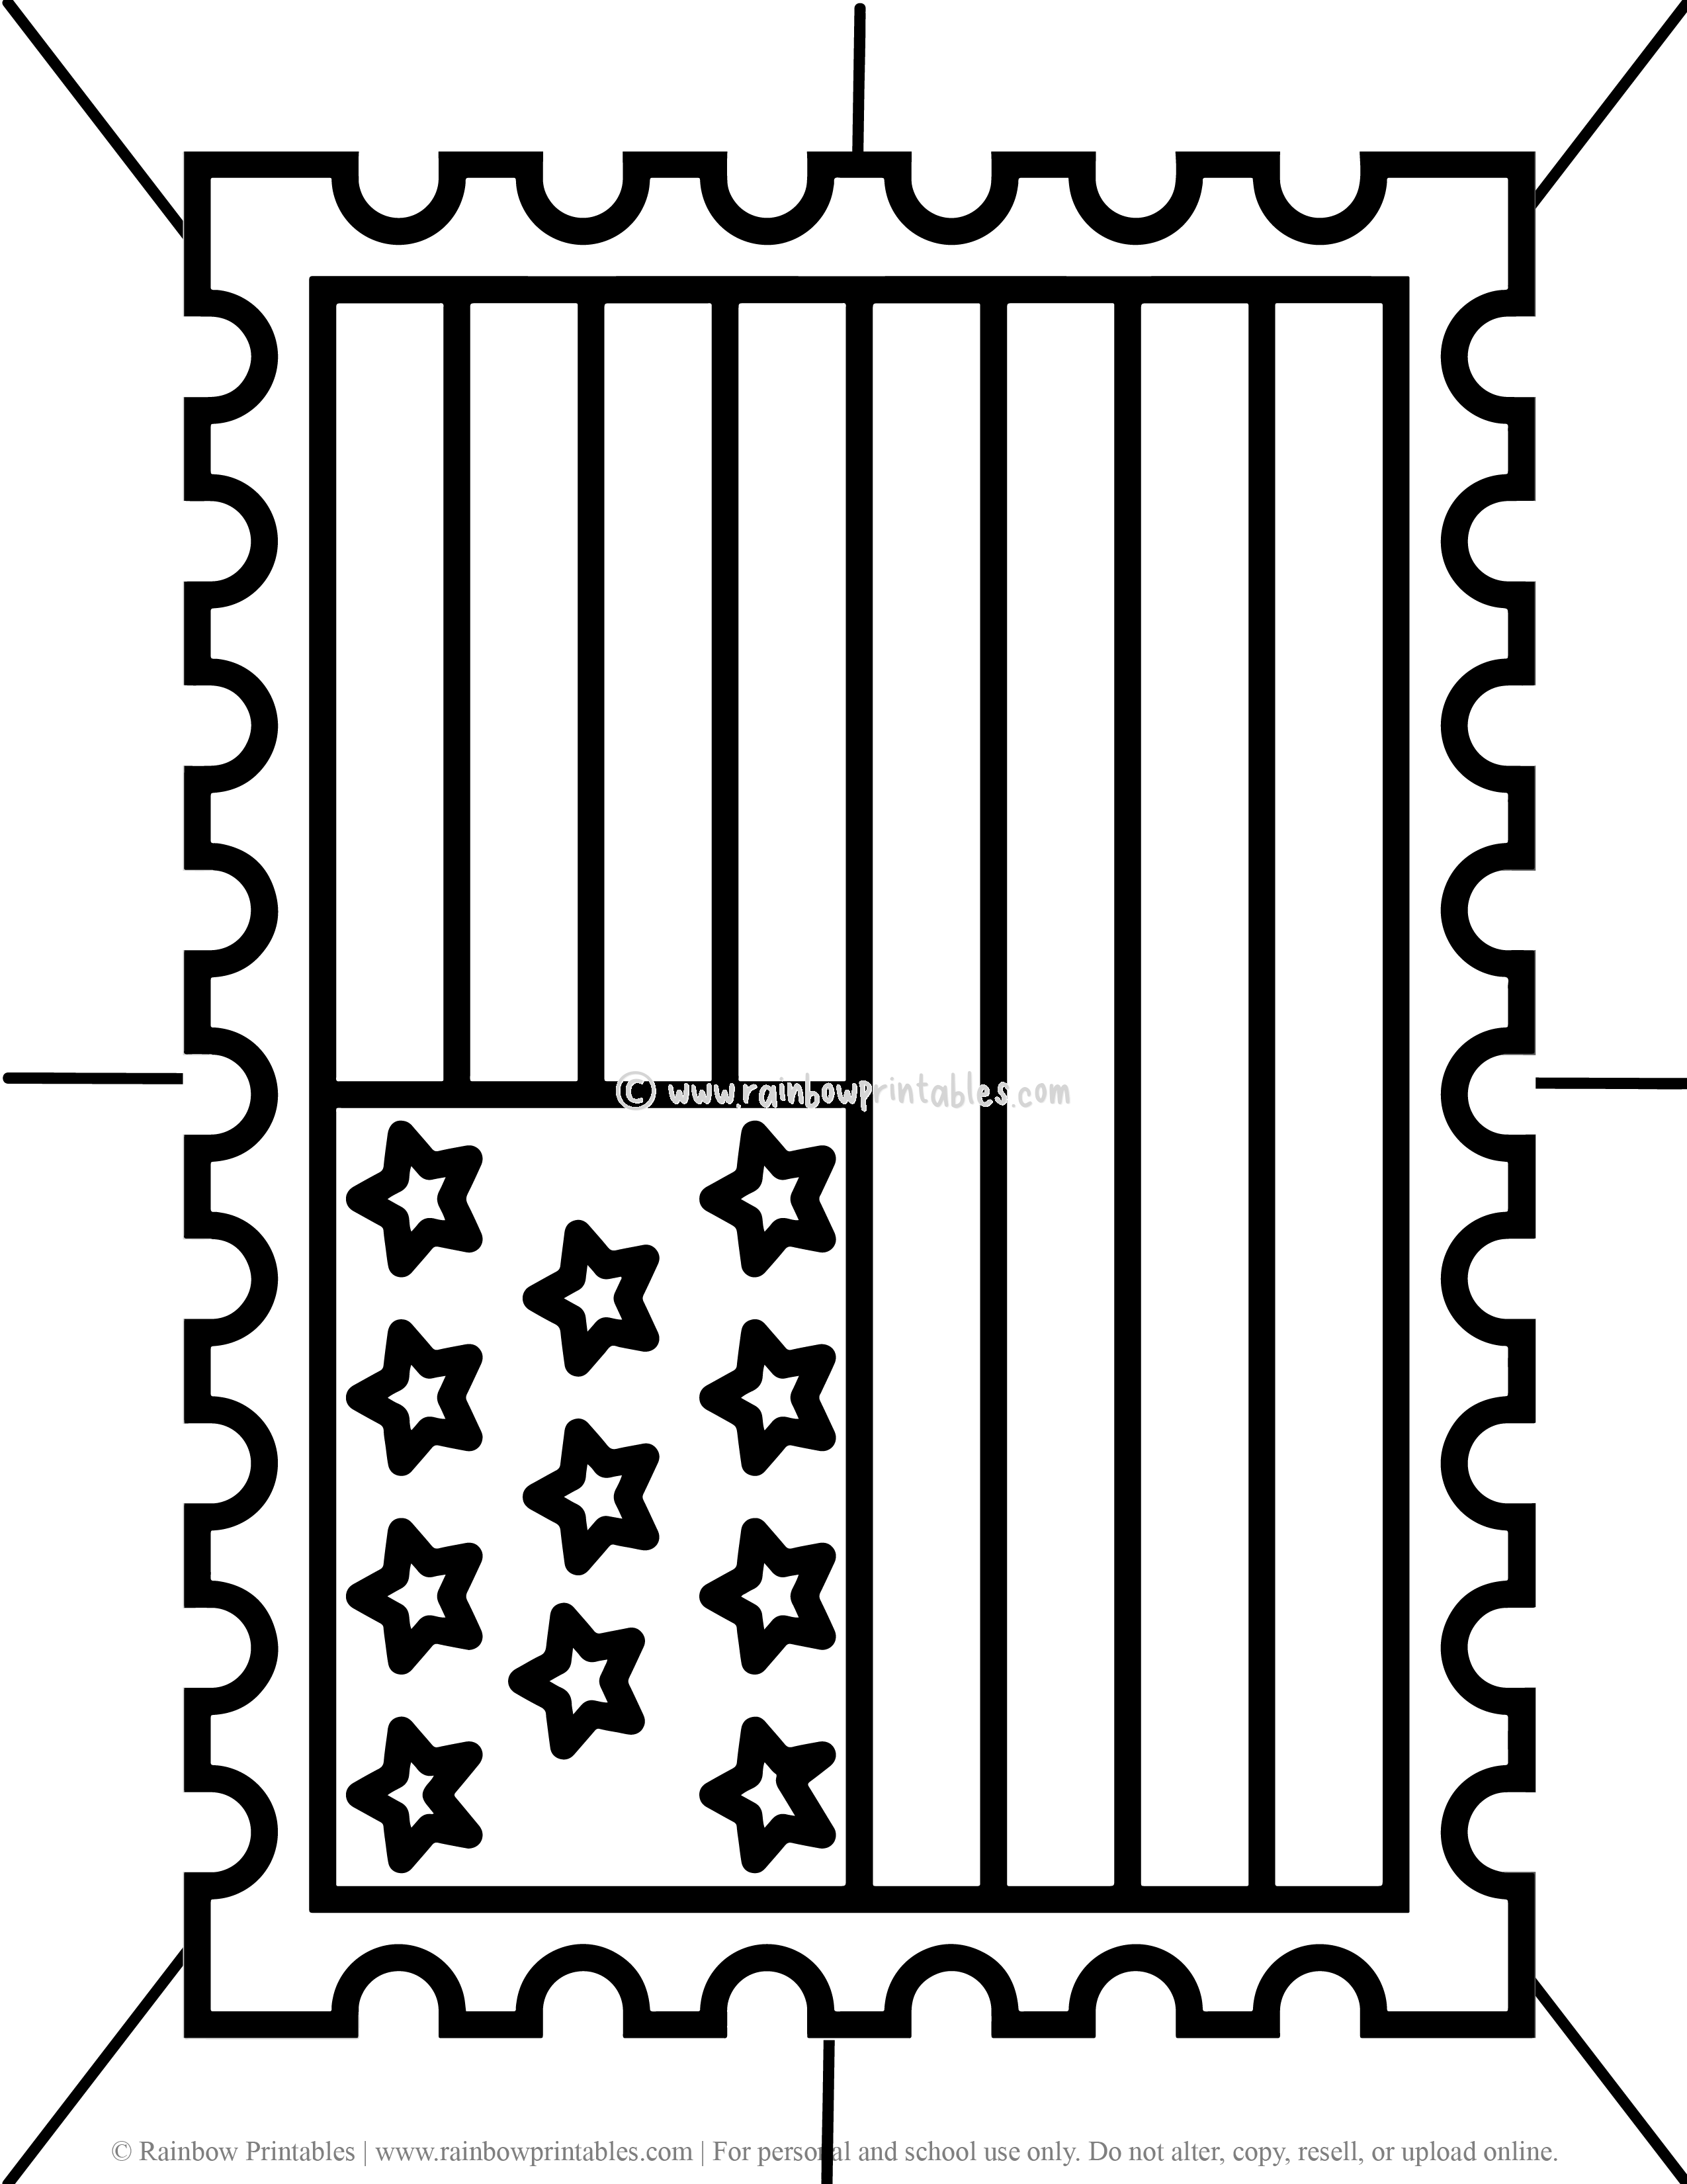 AMERICAN USA Stamp Flag Simple Patriotic Coloring Page for Kids Letter Stars and Stripes